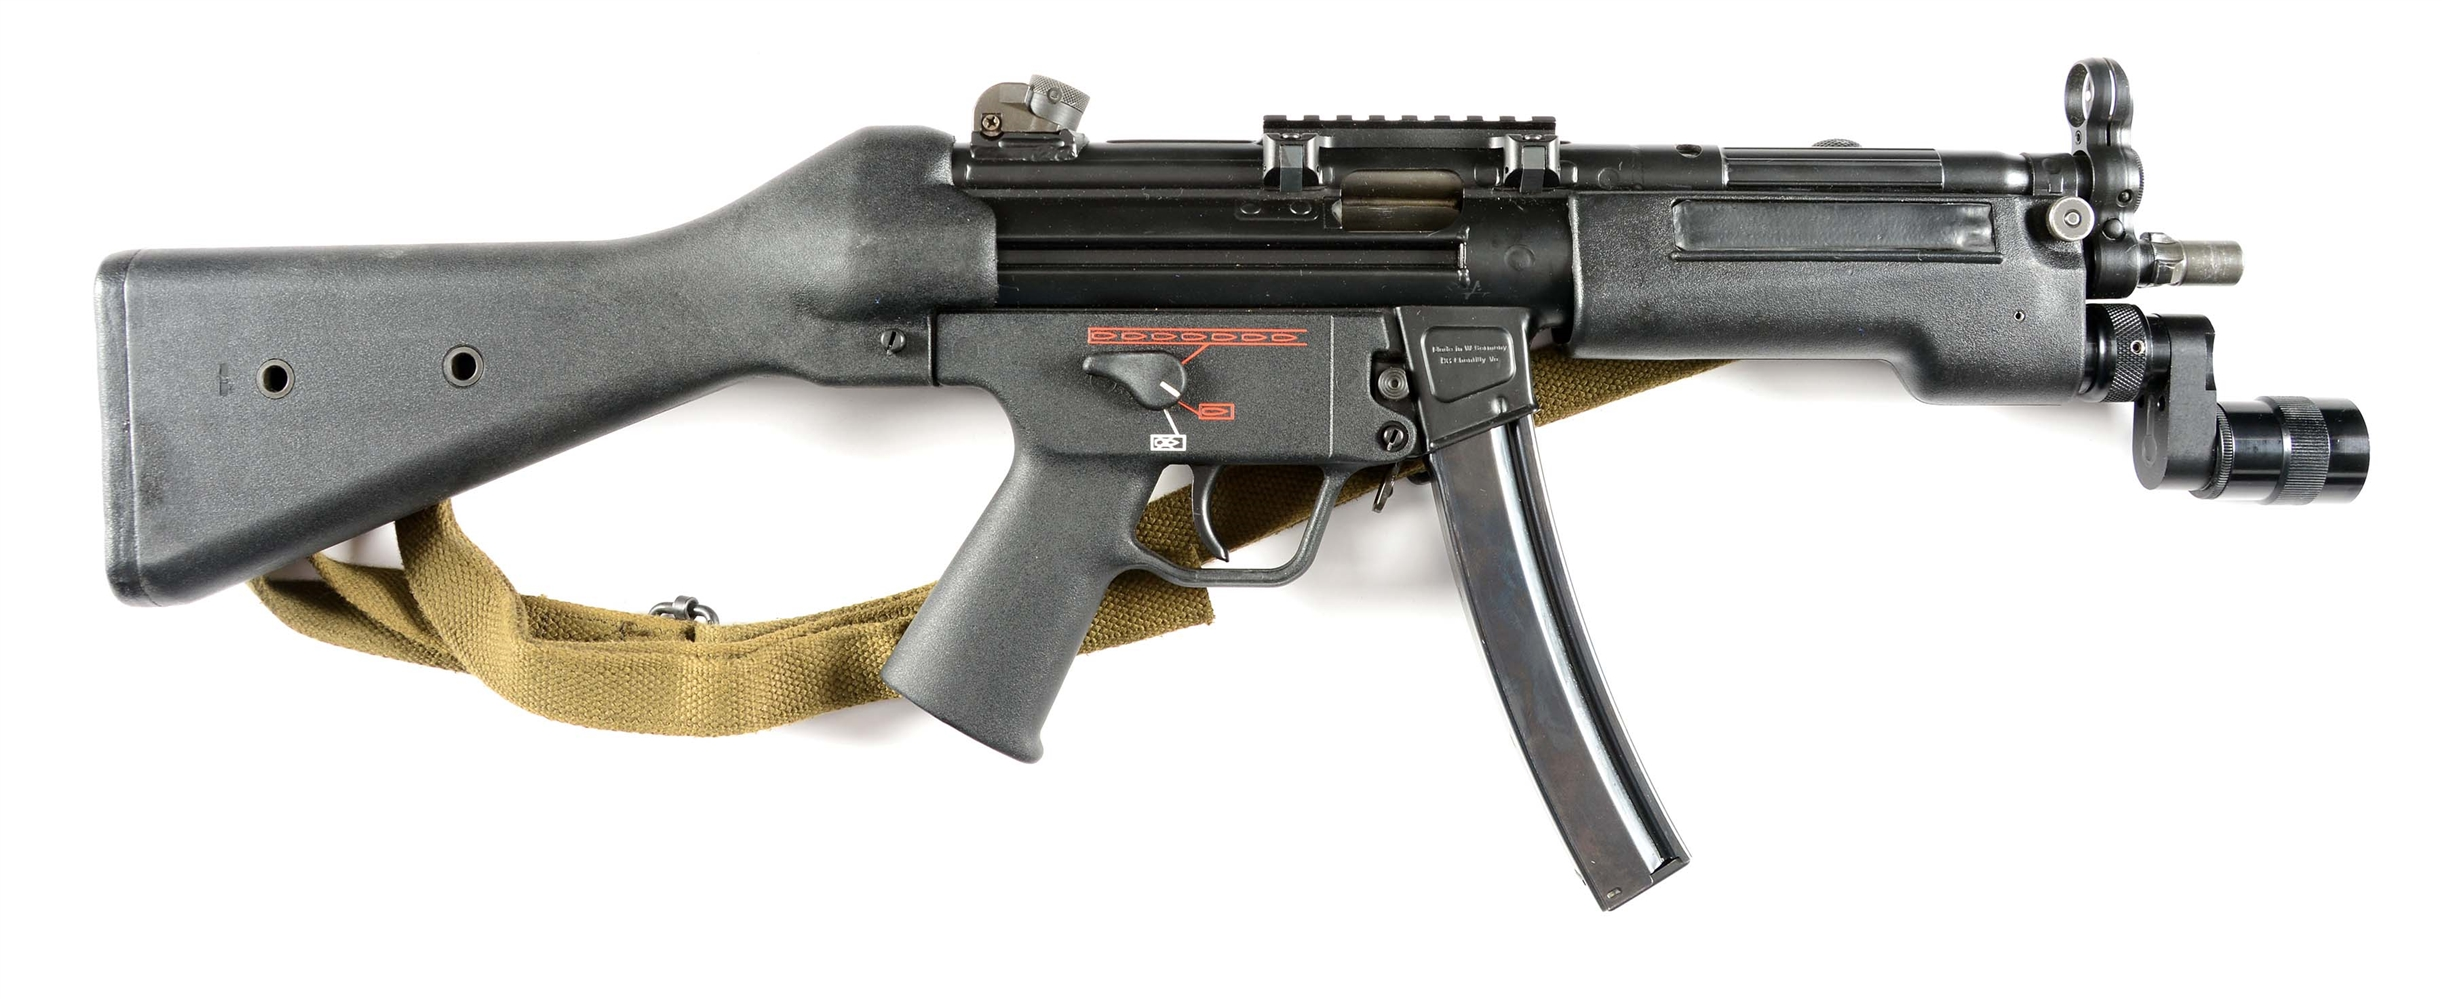 (N) H&K MP5A2 MACHINE GUN (PRE-86 DEALER SAMPLE).